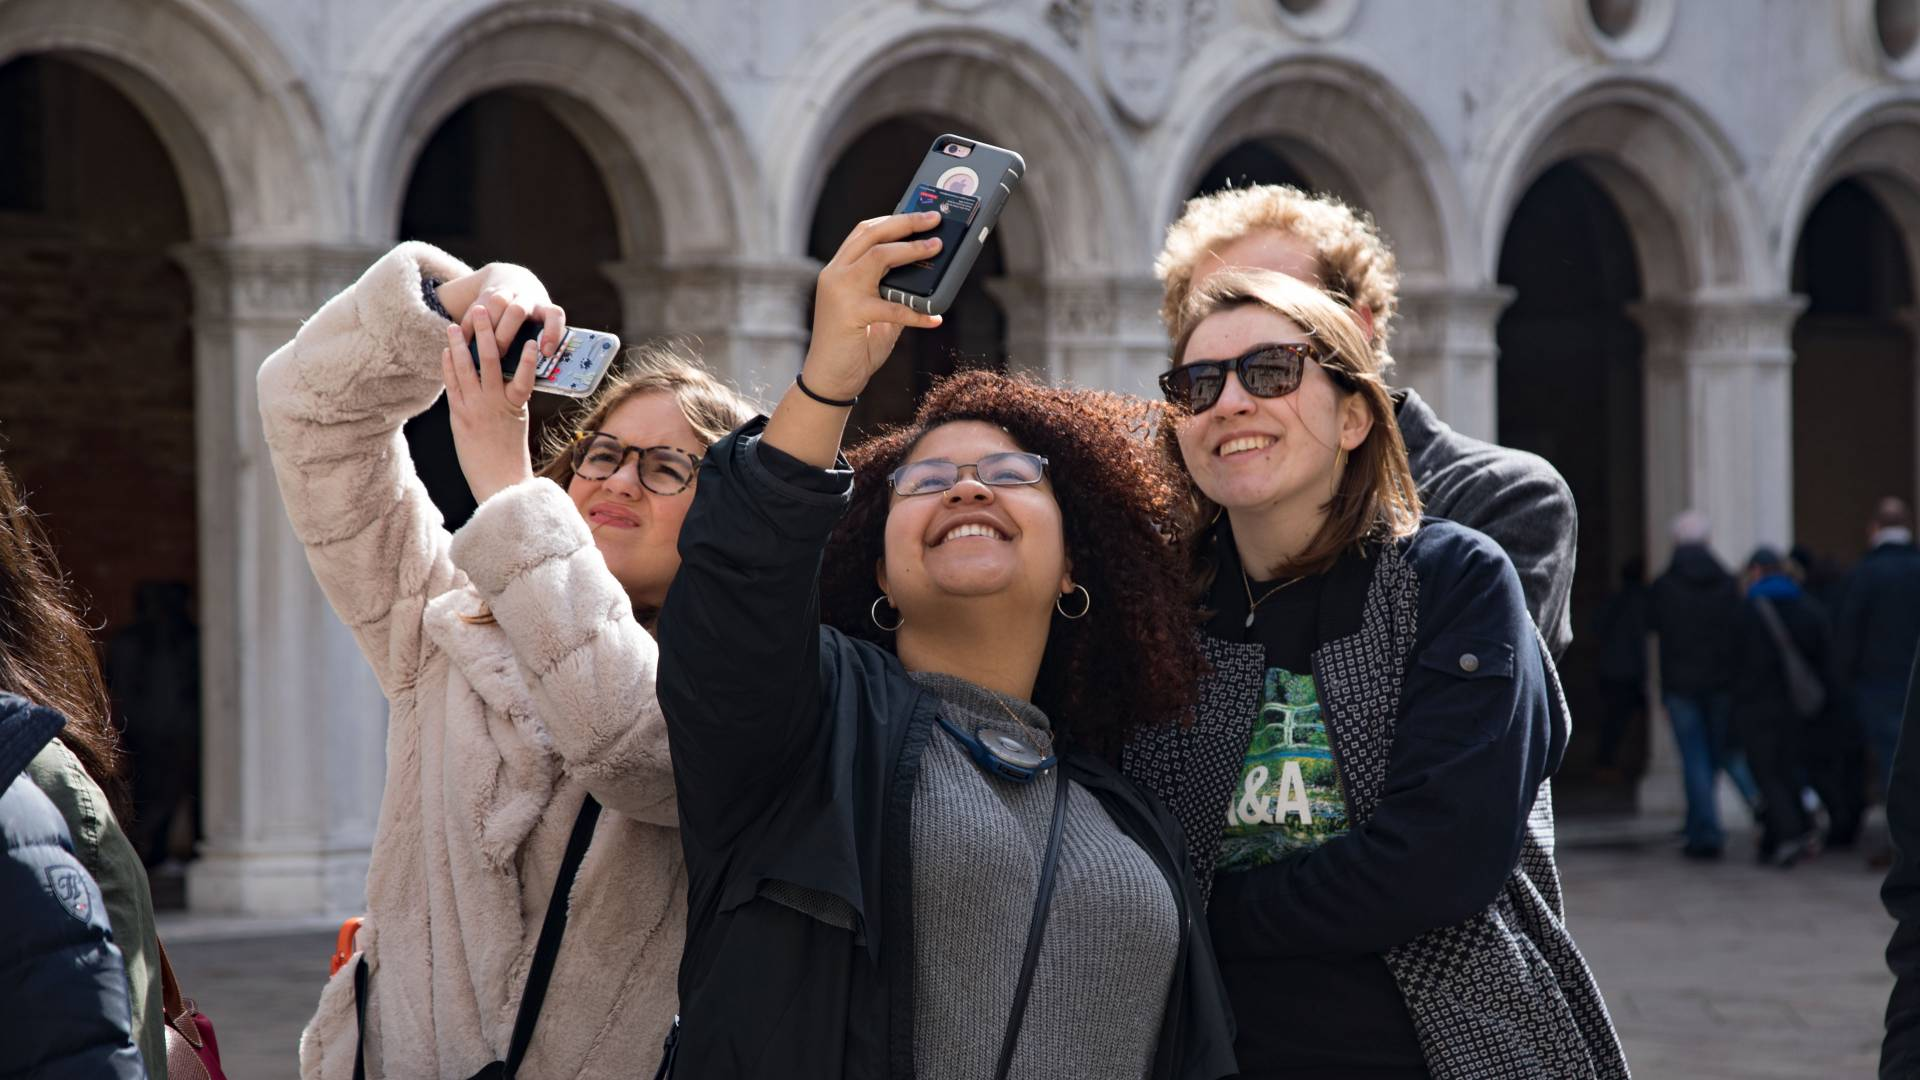 Students taking selfies outside the Doge's Palace in Venice